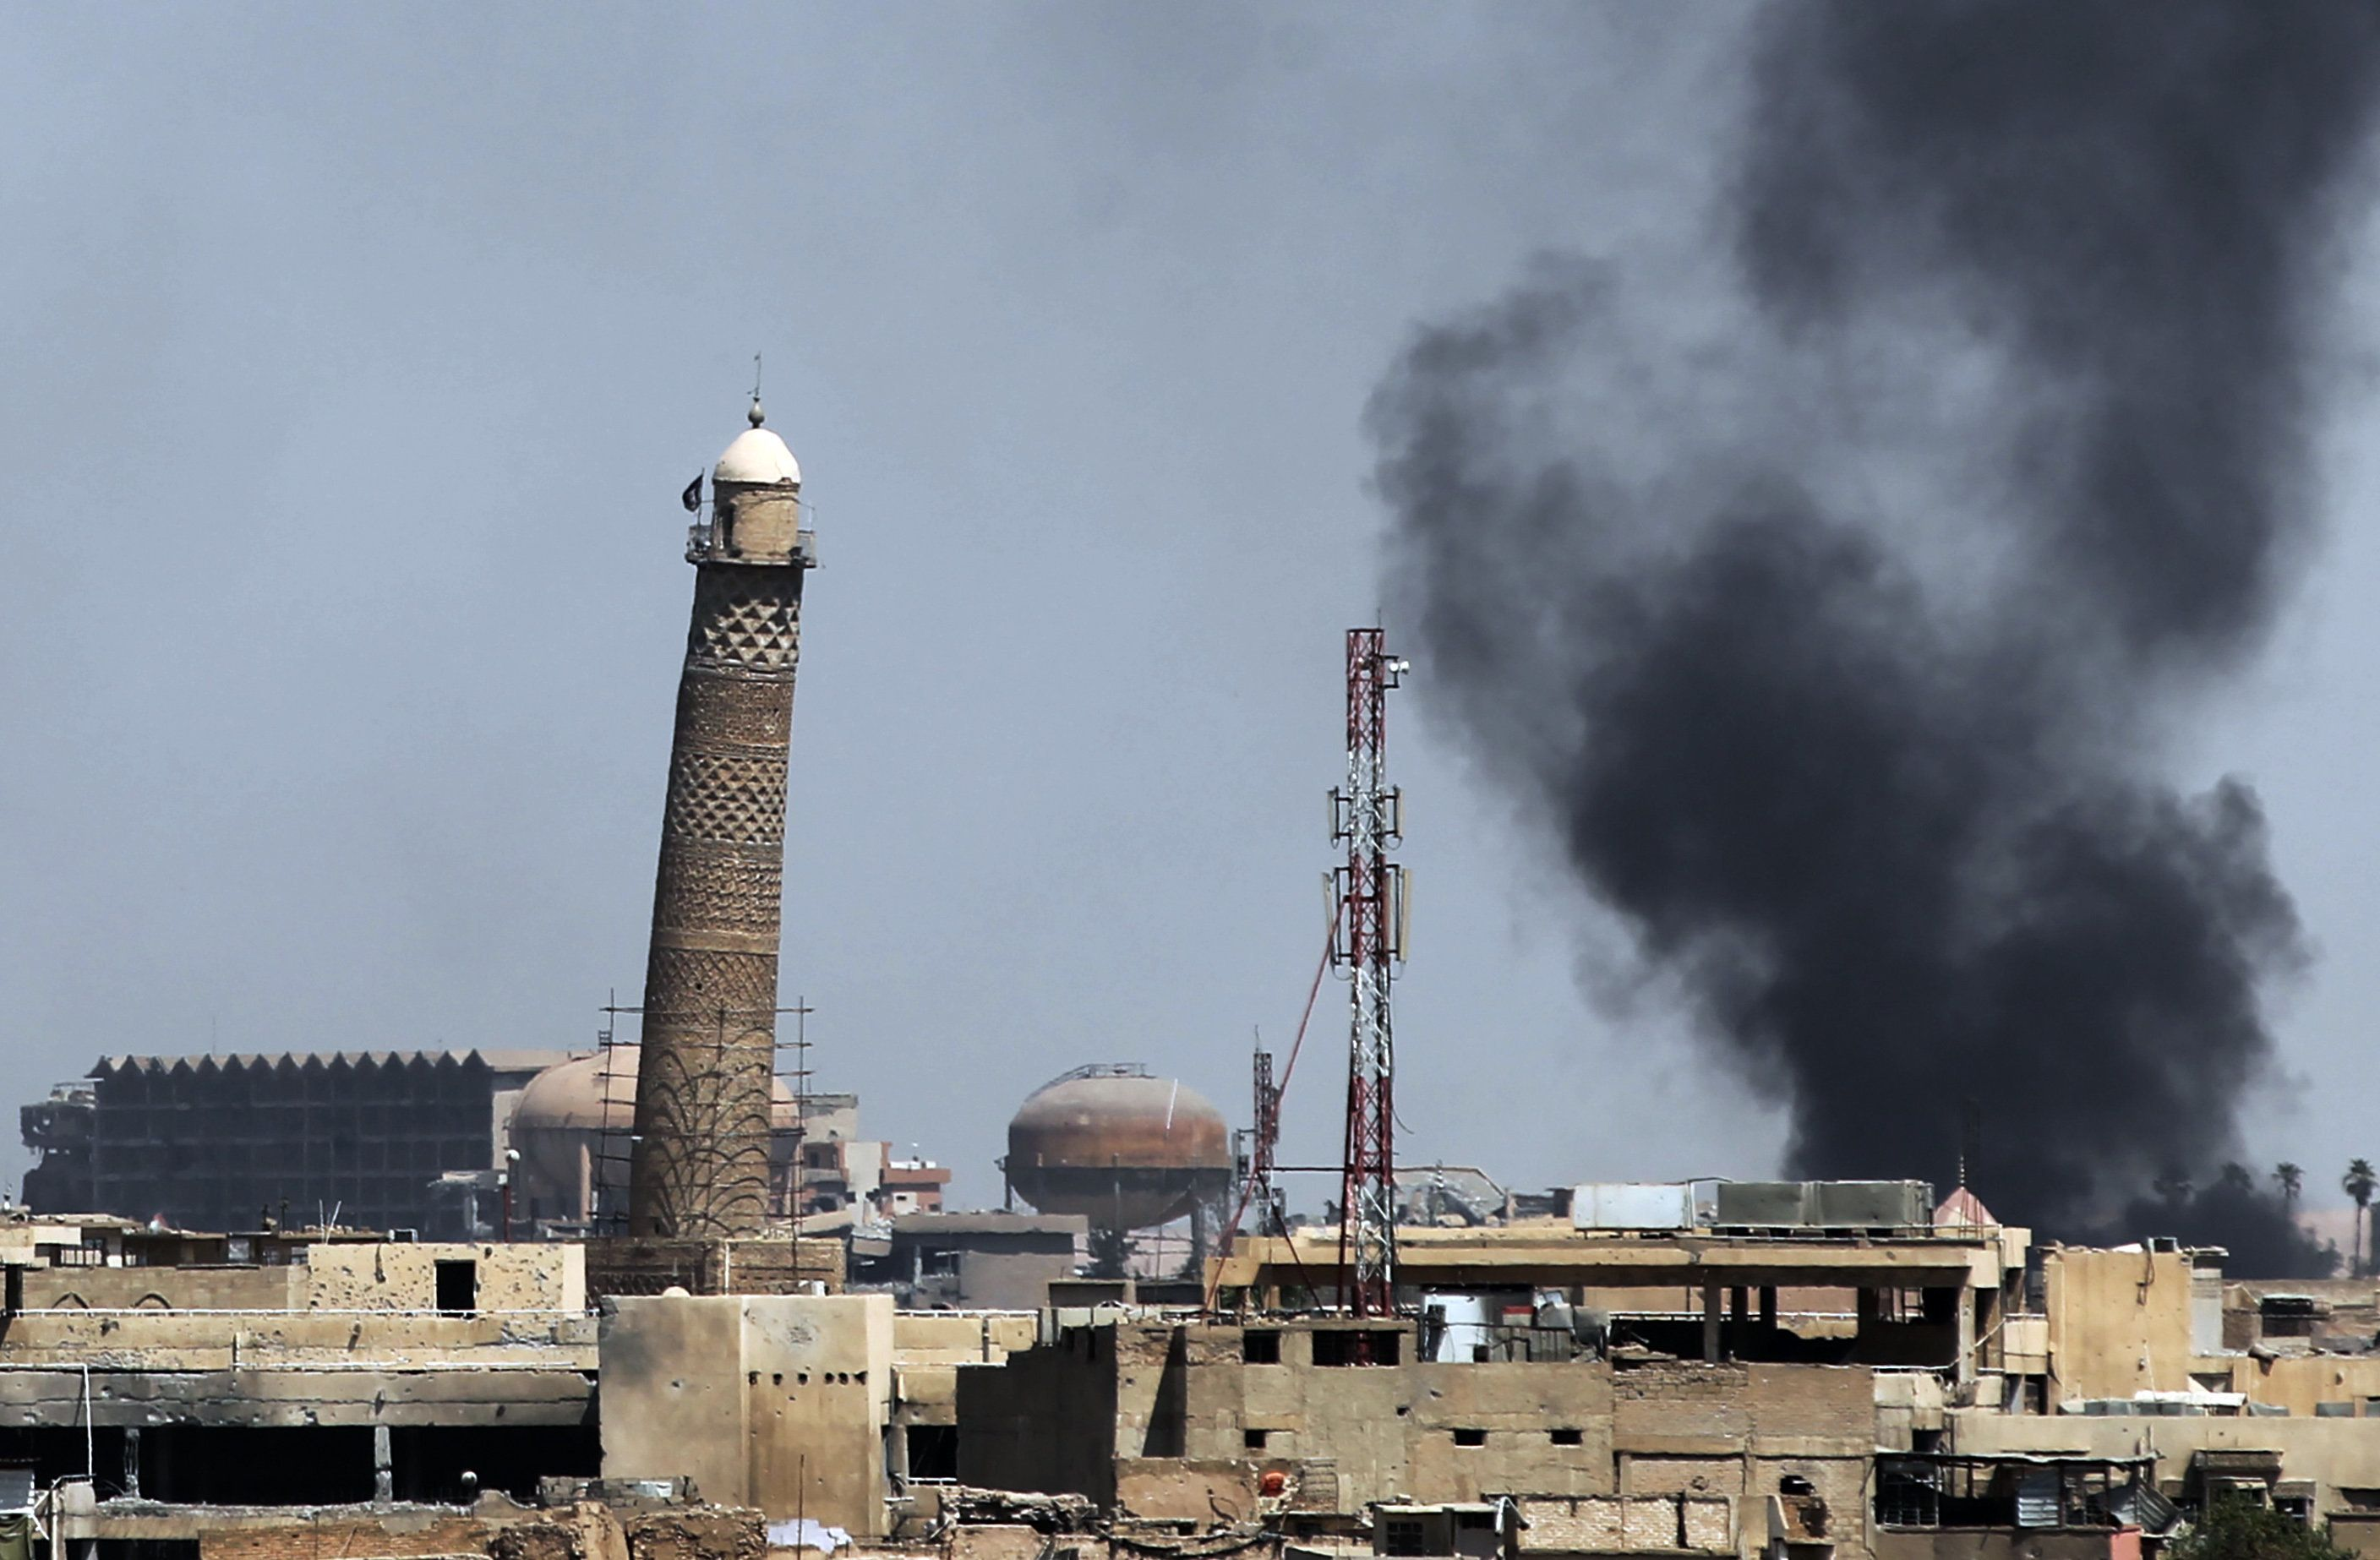 Smoke is seen billowing from Mosul's Old City earlier this month during the ongoing offensive by Iraqi forces.